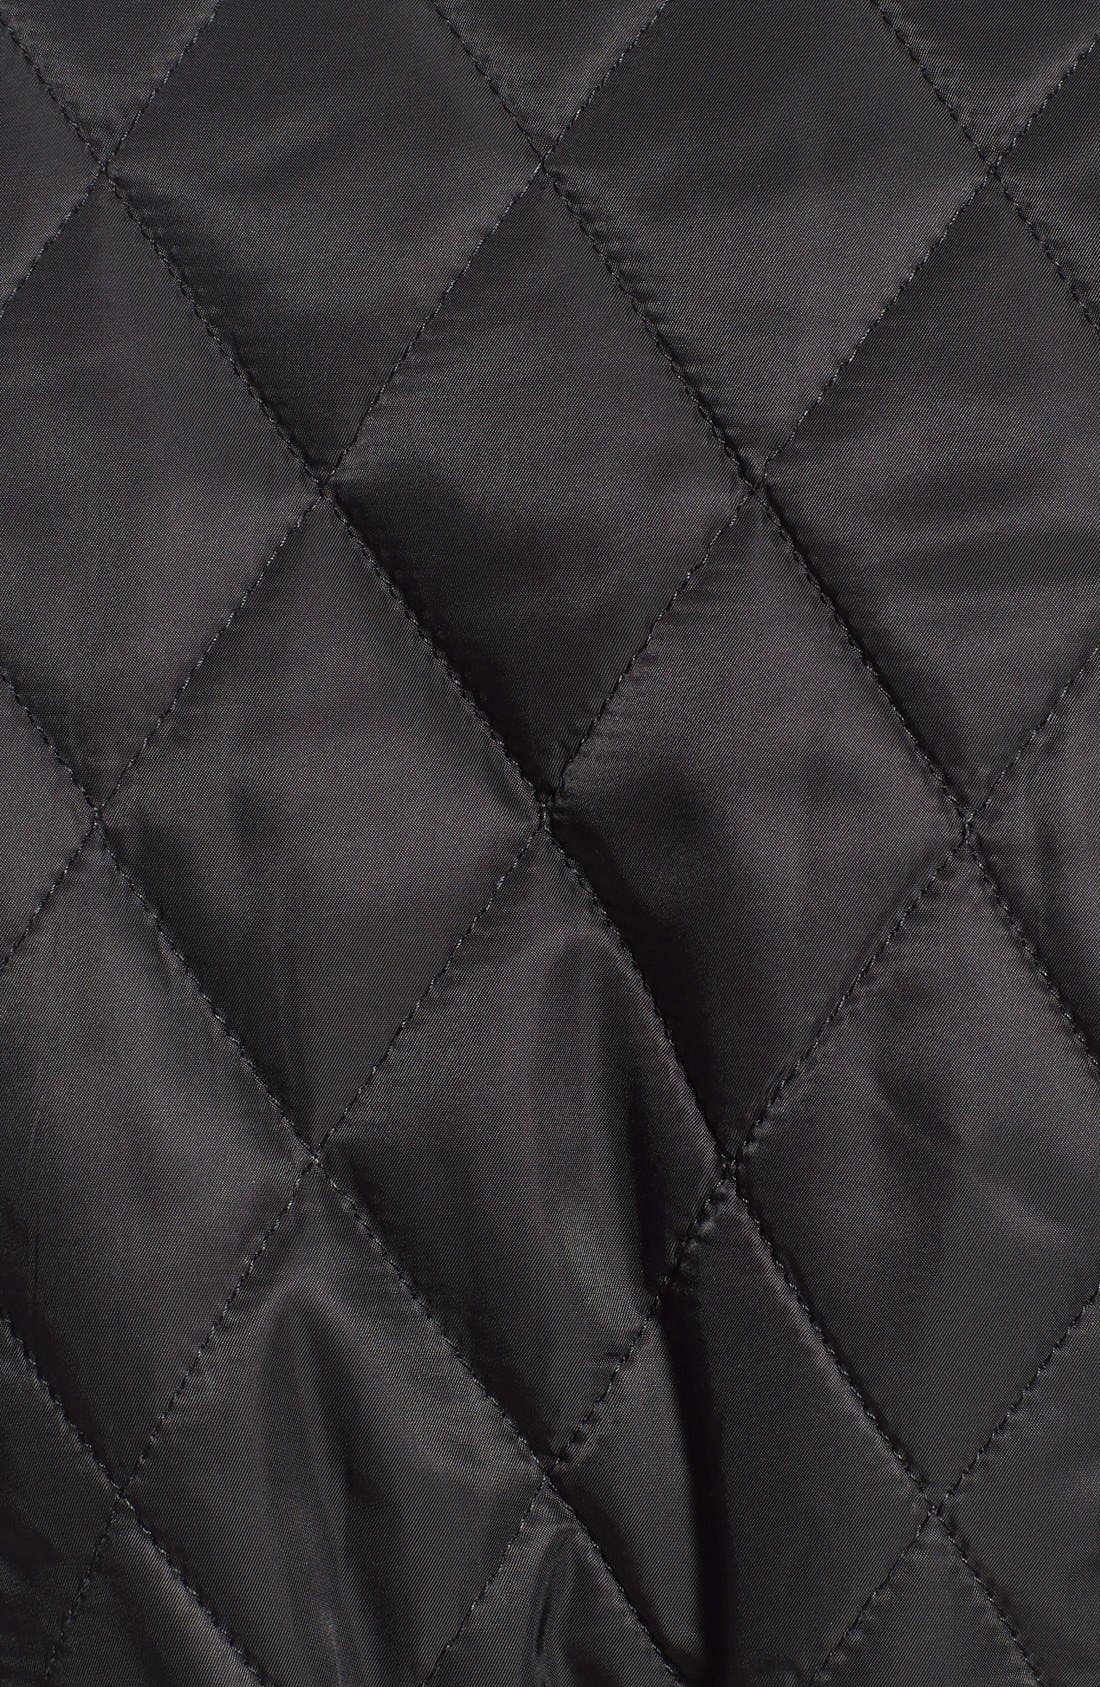 Faux Suede Trim Belted Quilted Jacket,                             Alternate thumbnail 5, color,                             Black/ Ginger